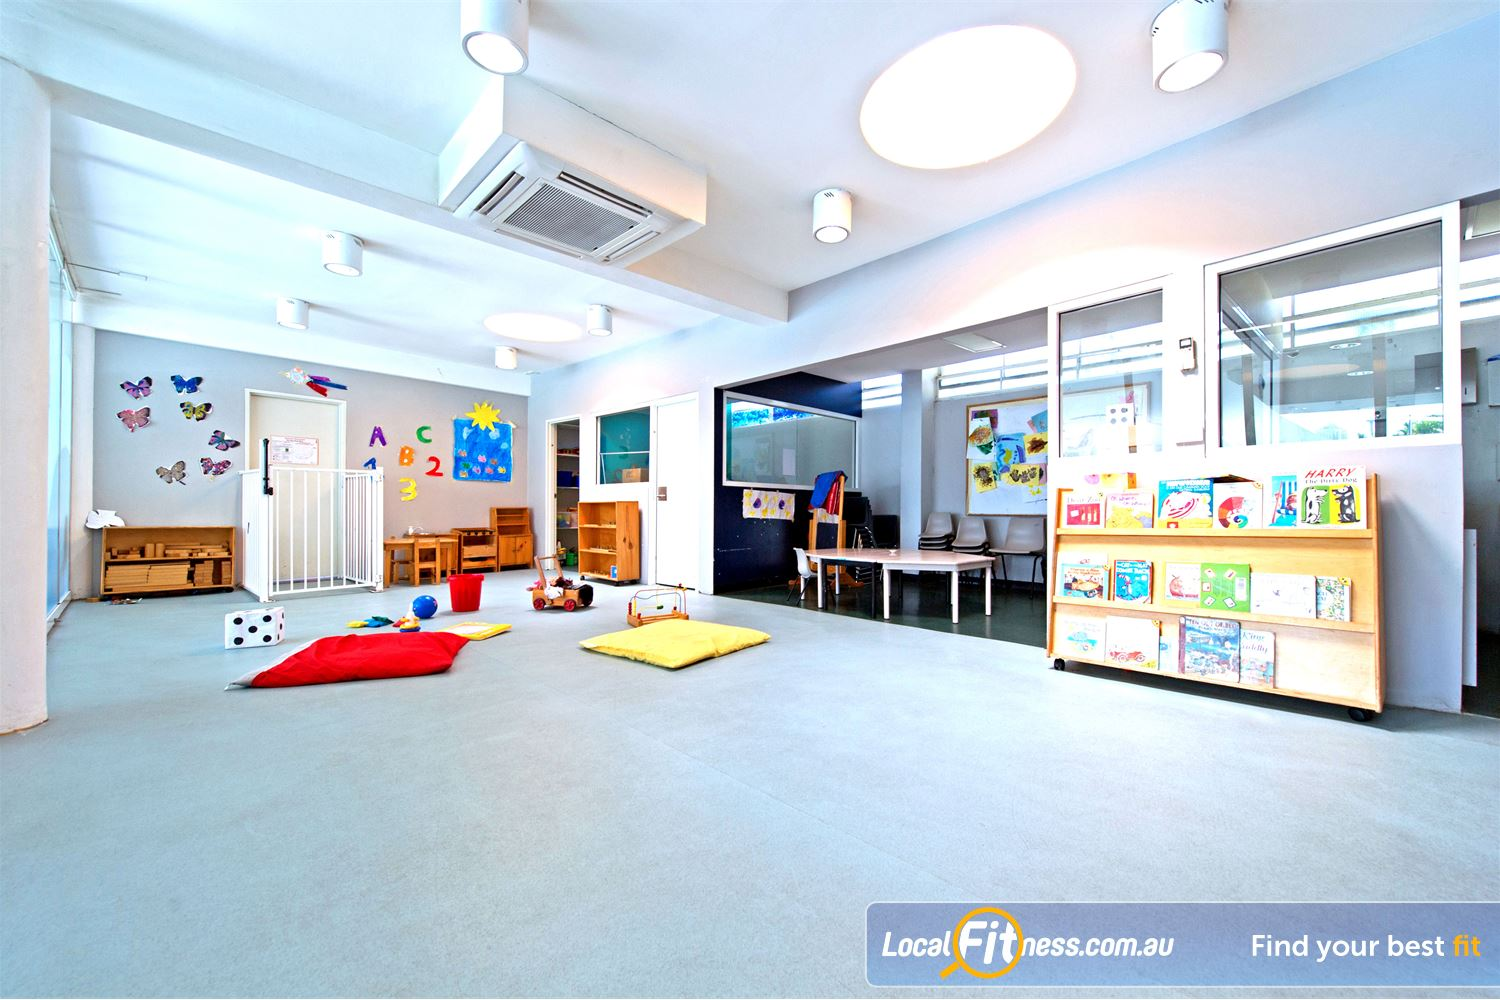 Victoria Park Pool Camperdown Camperdown Child Care provides the perfect place for your kids to have fun while you focus on your health & fitness.